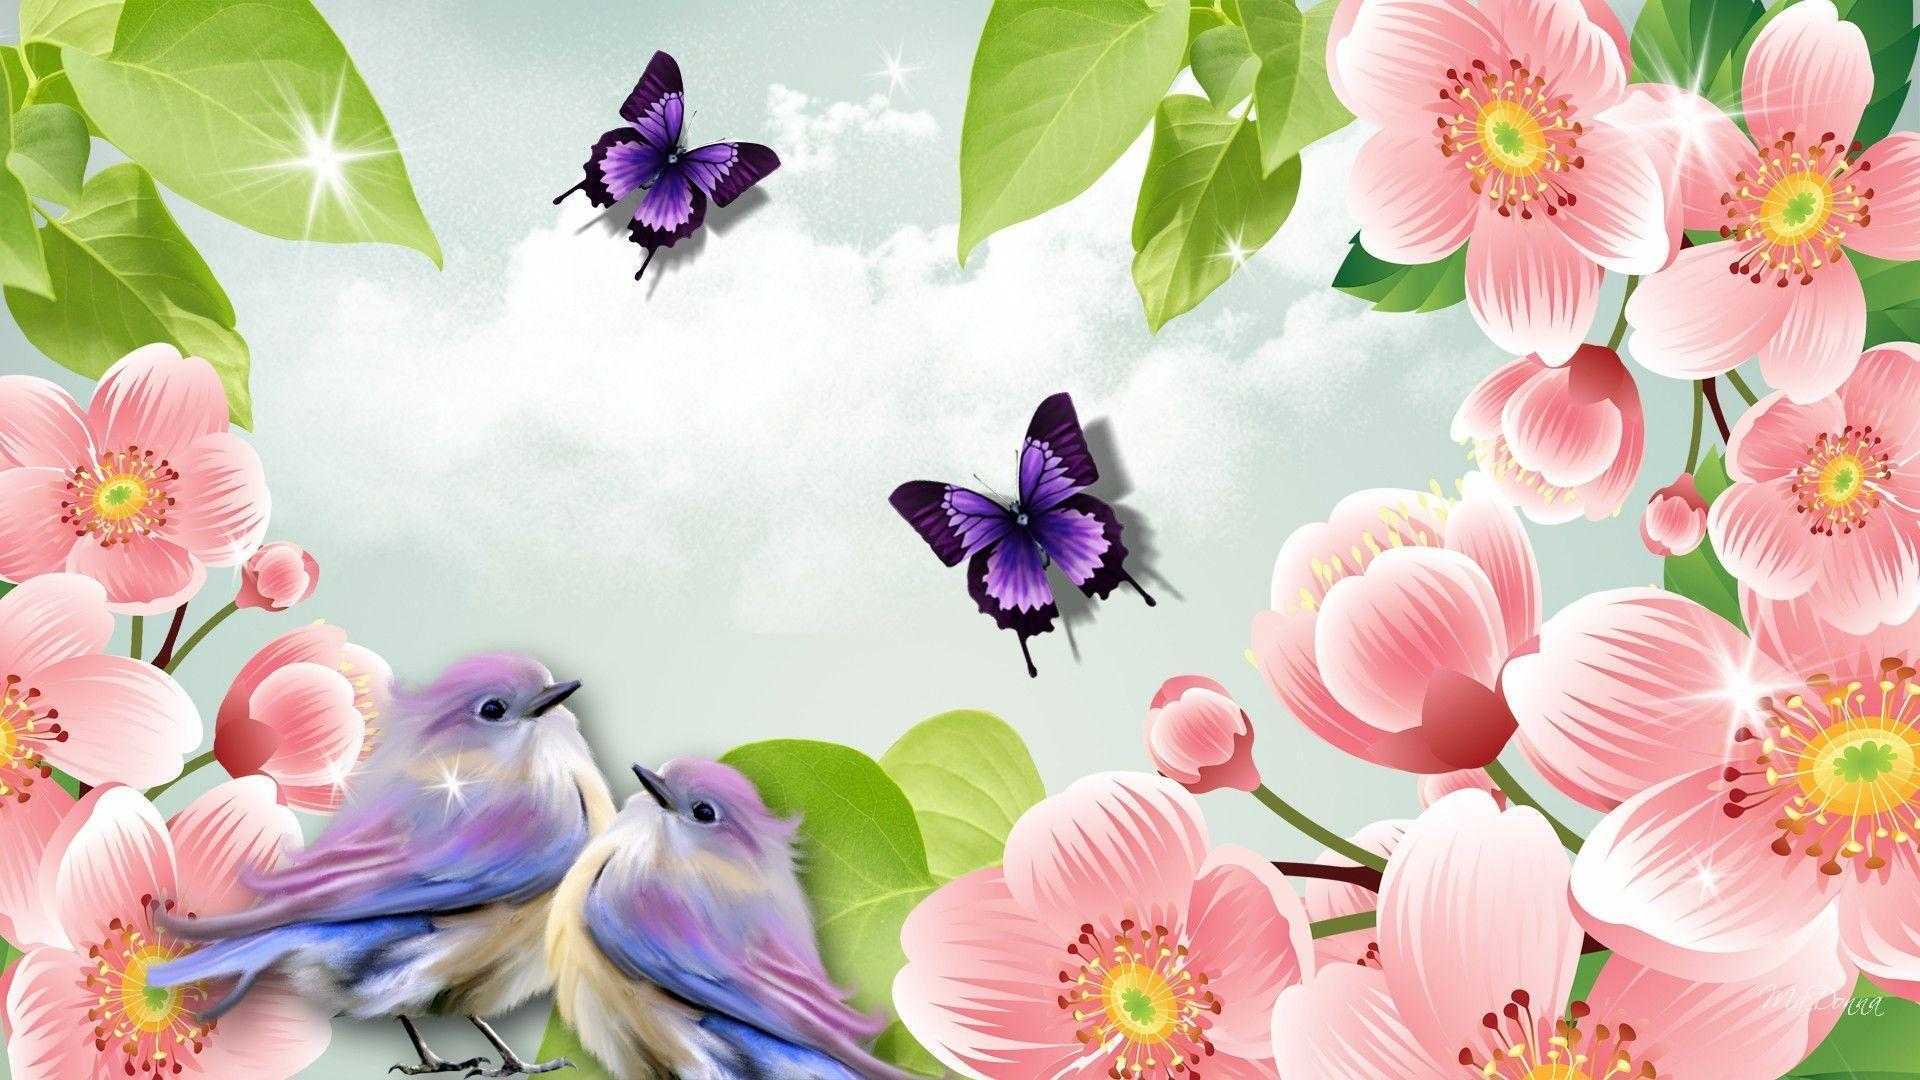 Spring Nature Wallpapers High Resolution Hd Hd Widescreen 10 HD